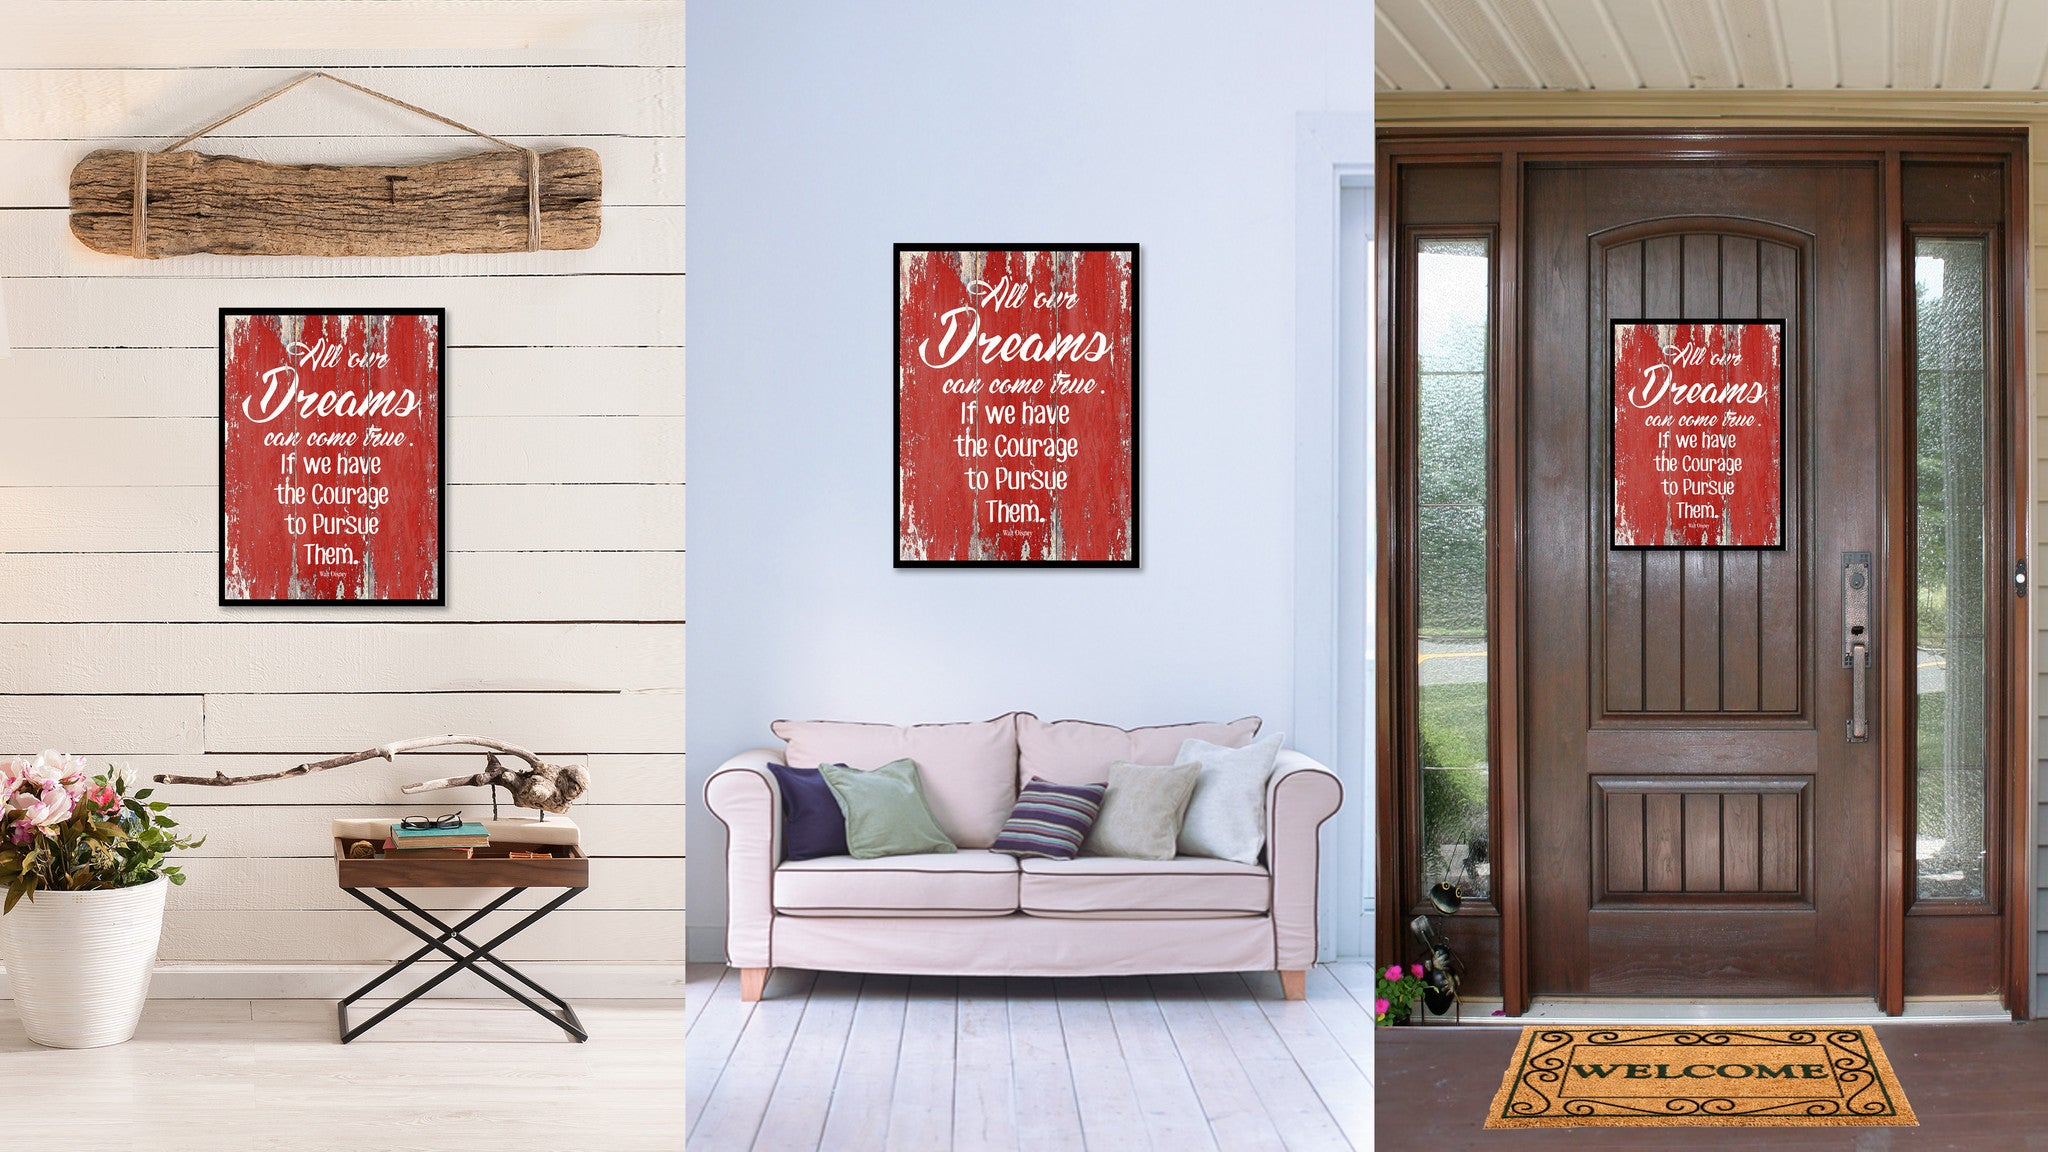 All Our Dreams Can Come True Walt Disney Inspirational Quote Saying Gift Ideas Home Decor Wall